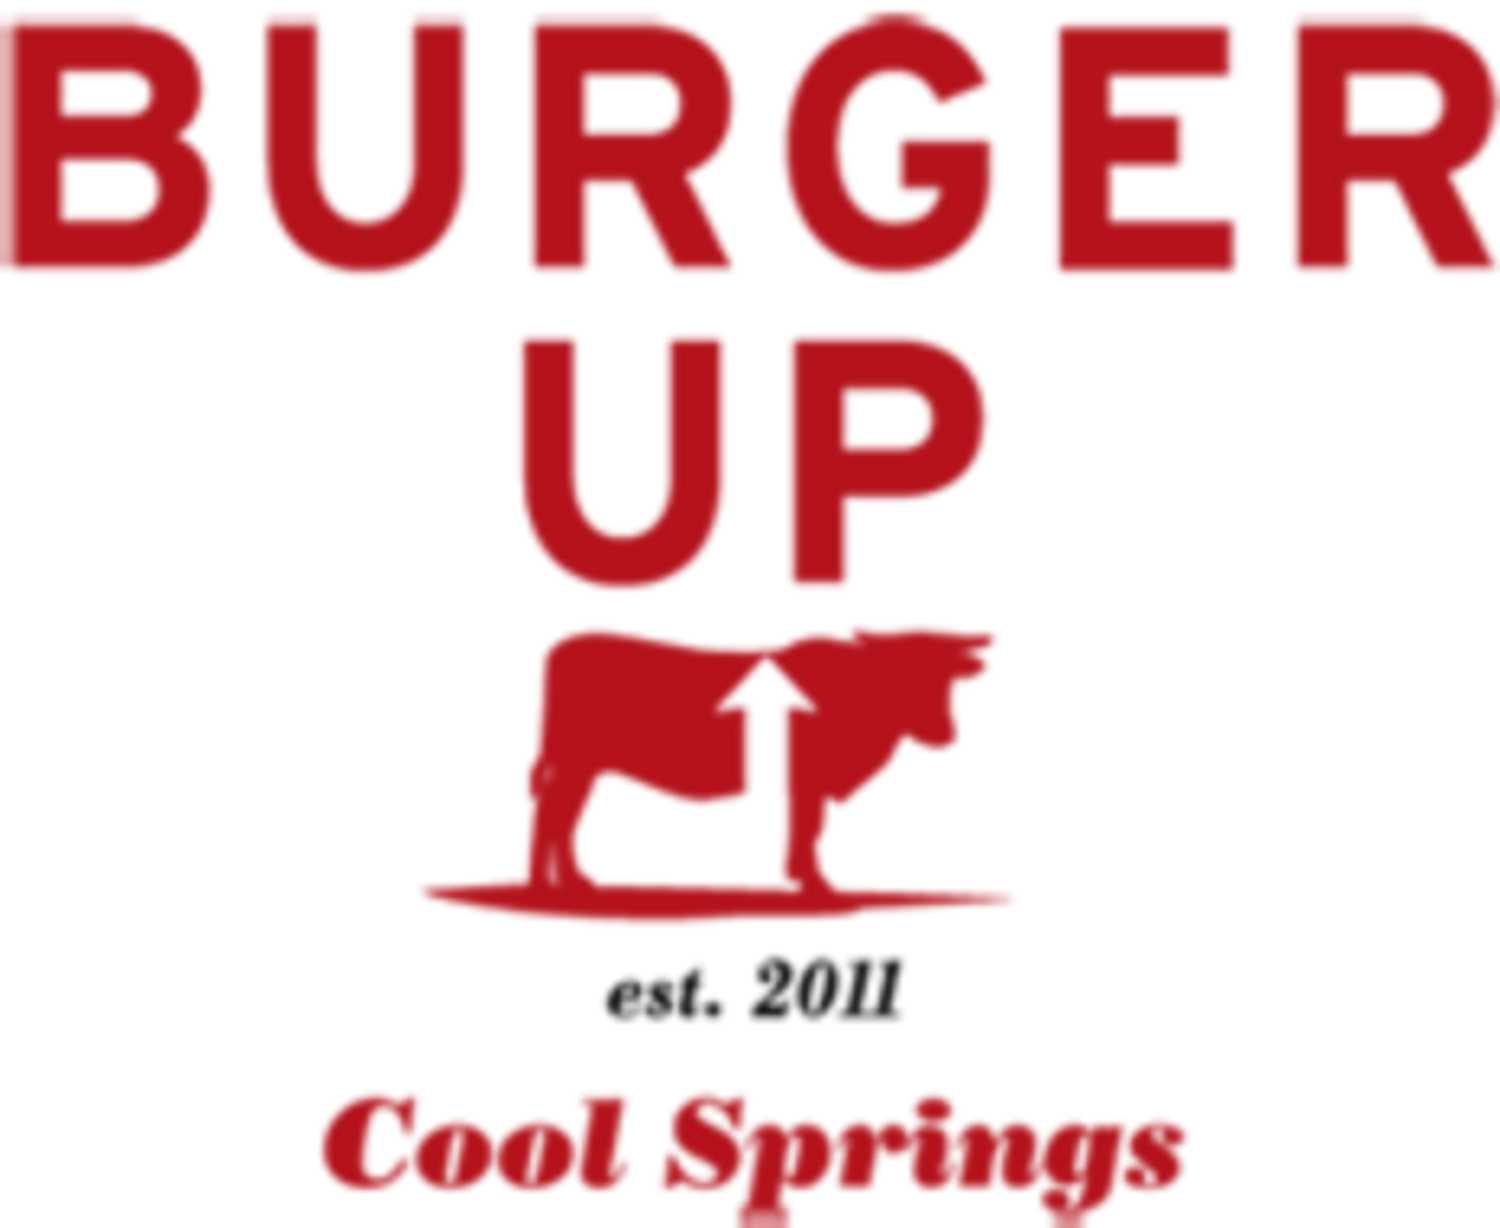 Burger Up Cool Springs